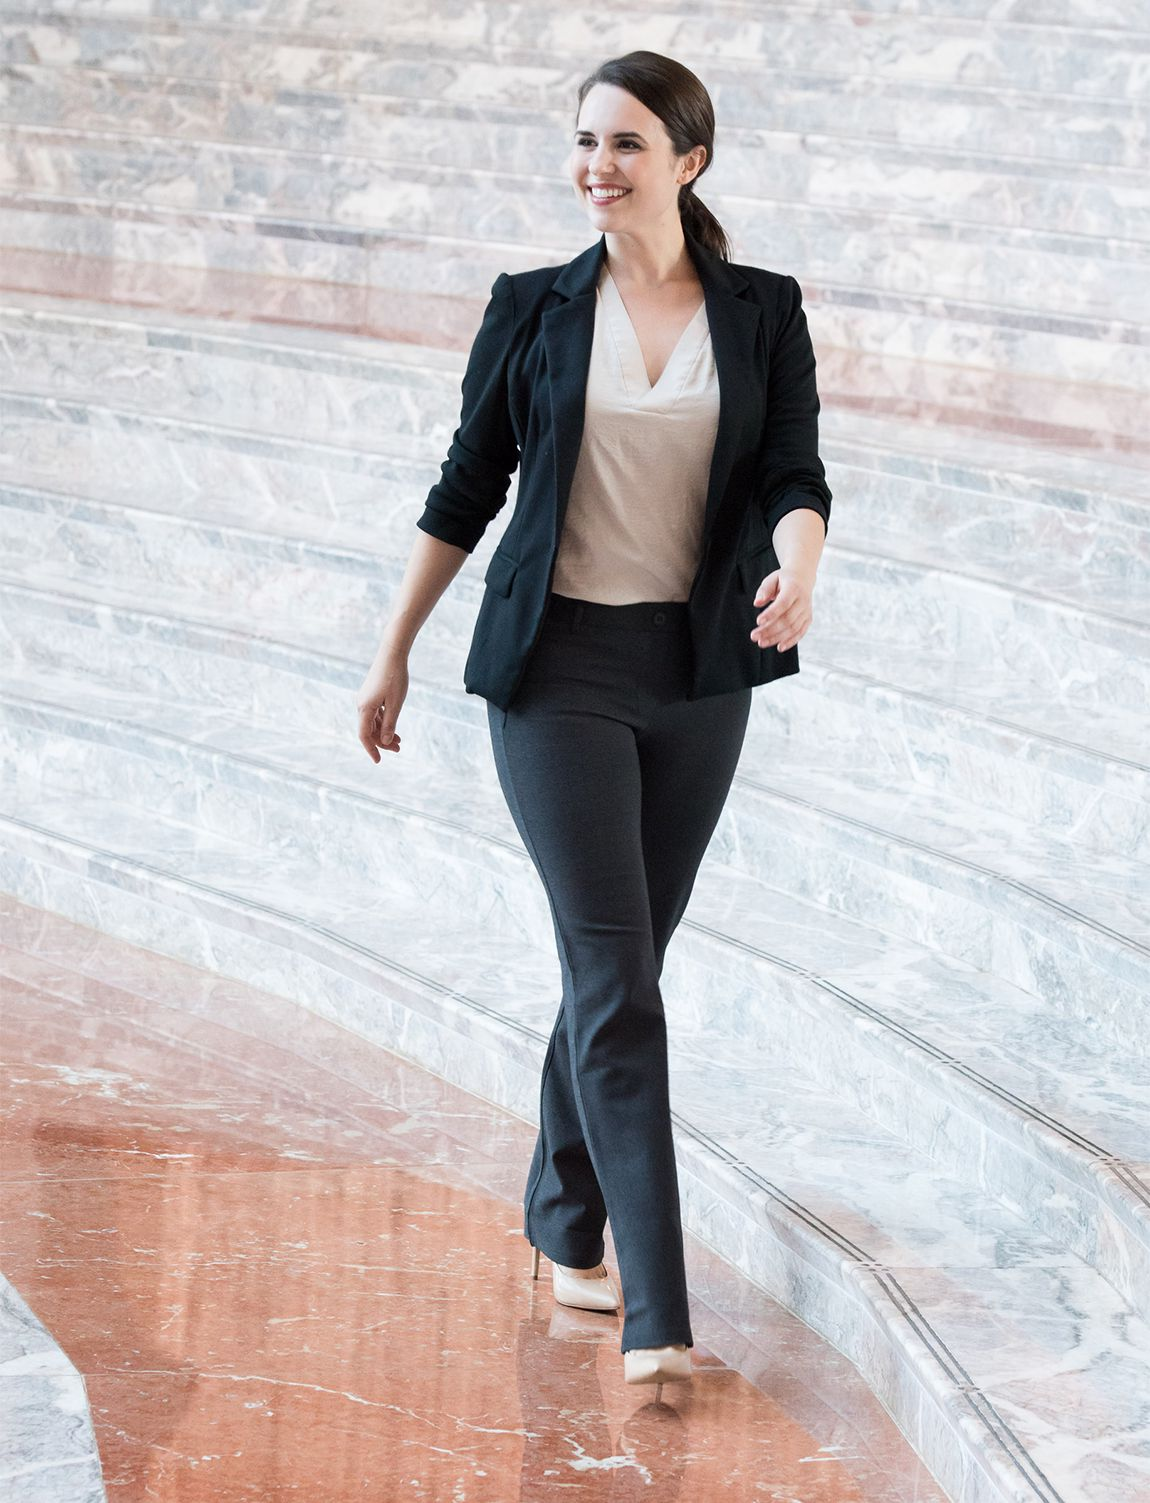 Womens Comfy Pants | Yoga Pants and Boots | Betabrand Yoga Dress Pants